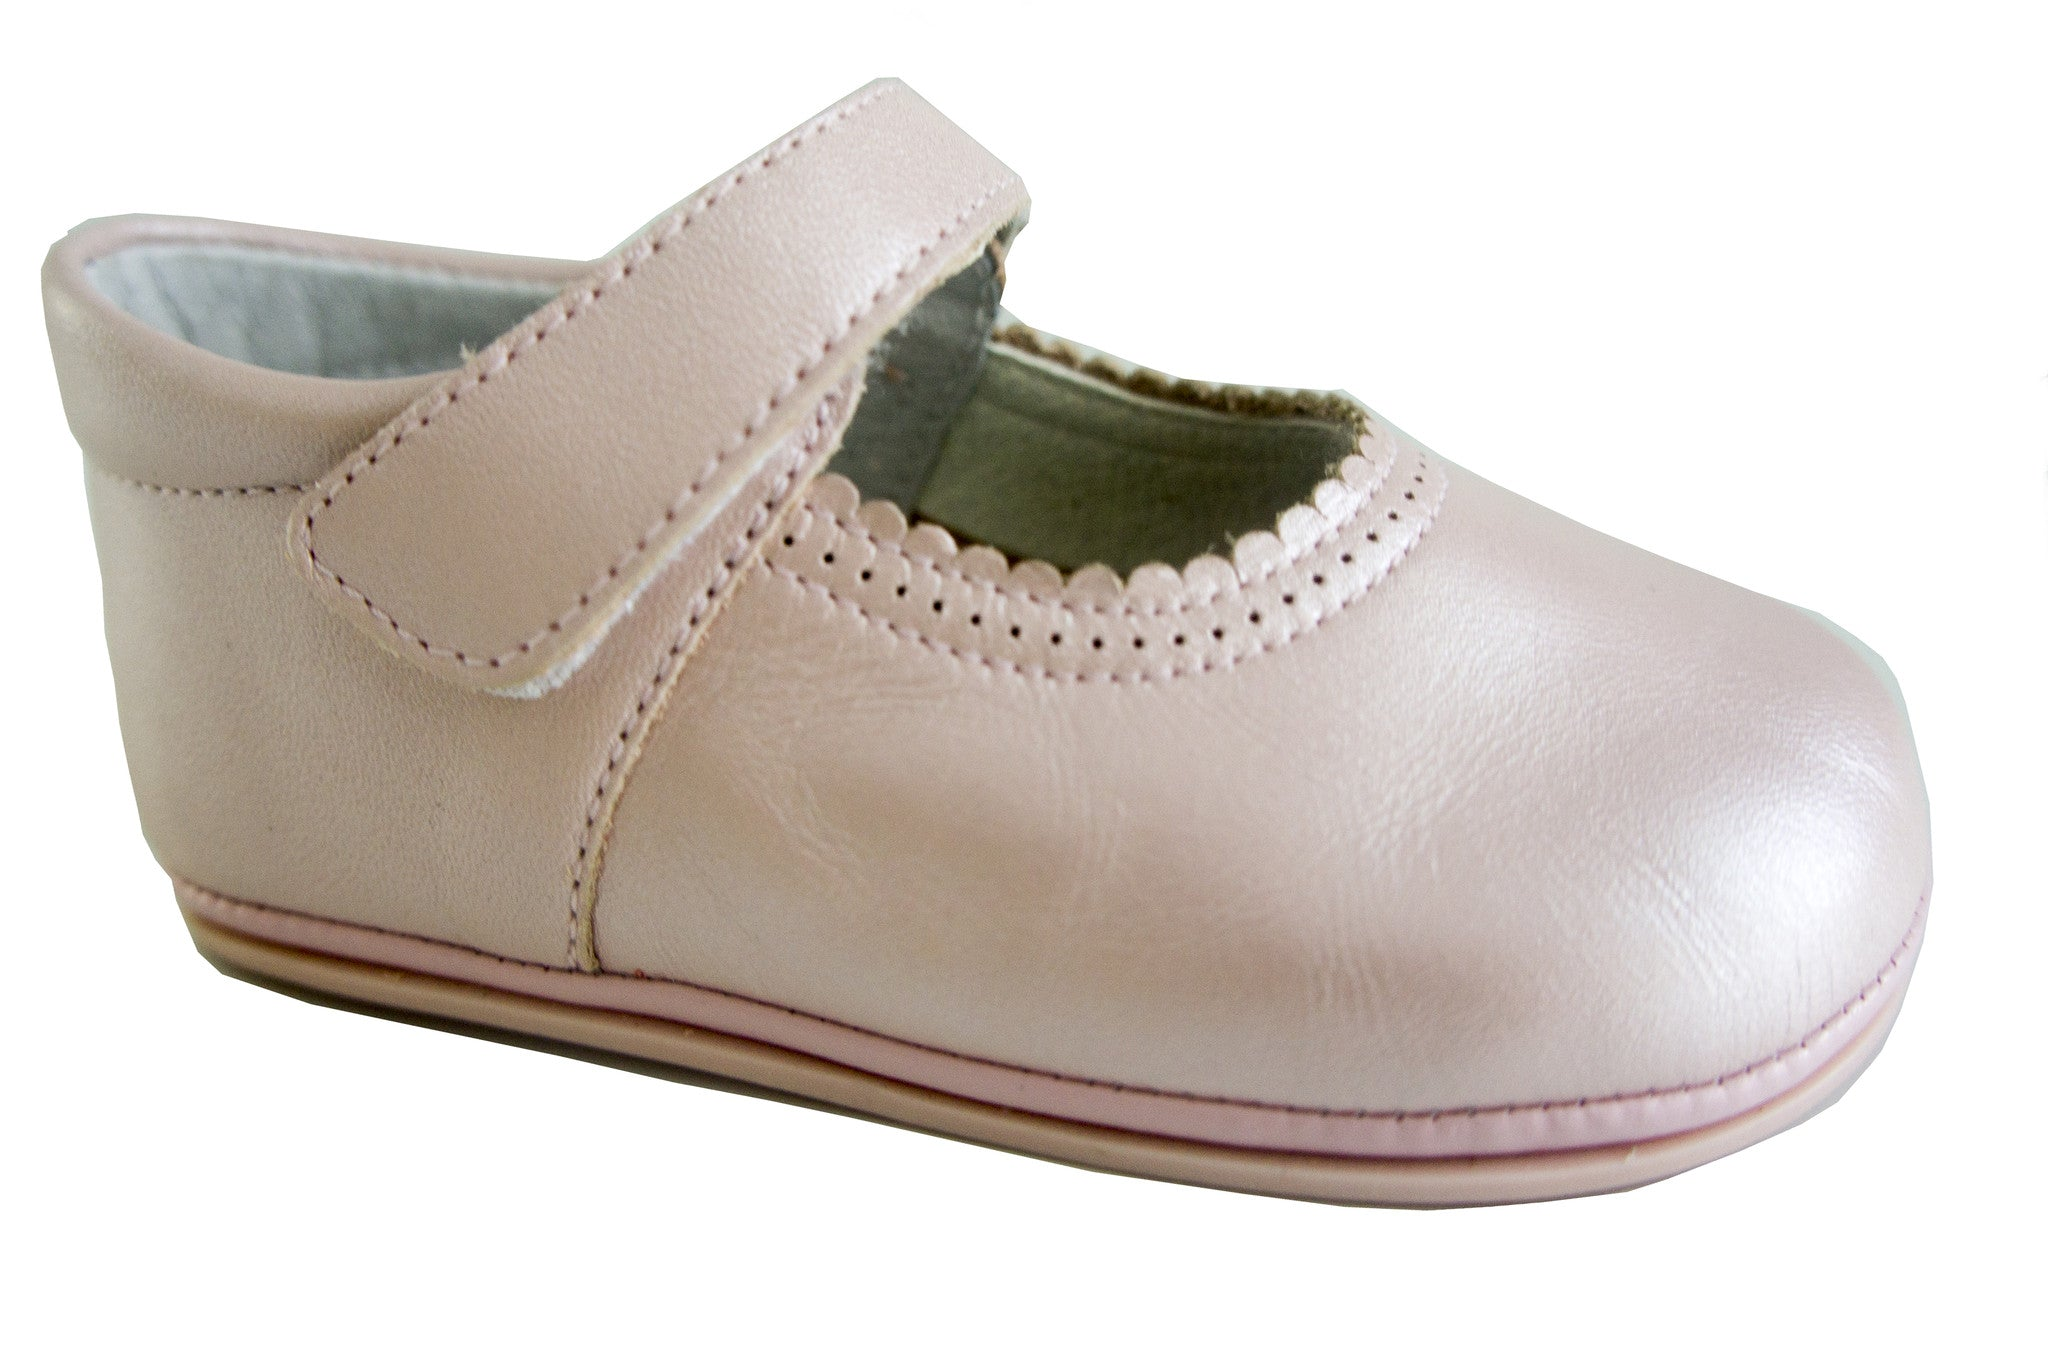 Patucos Infant Classic Sparkling Leather Pink Shoes for Girls